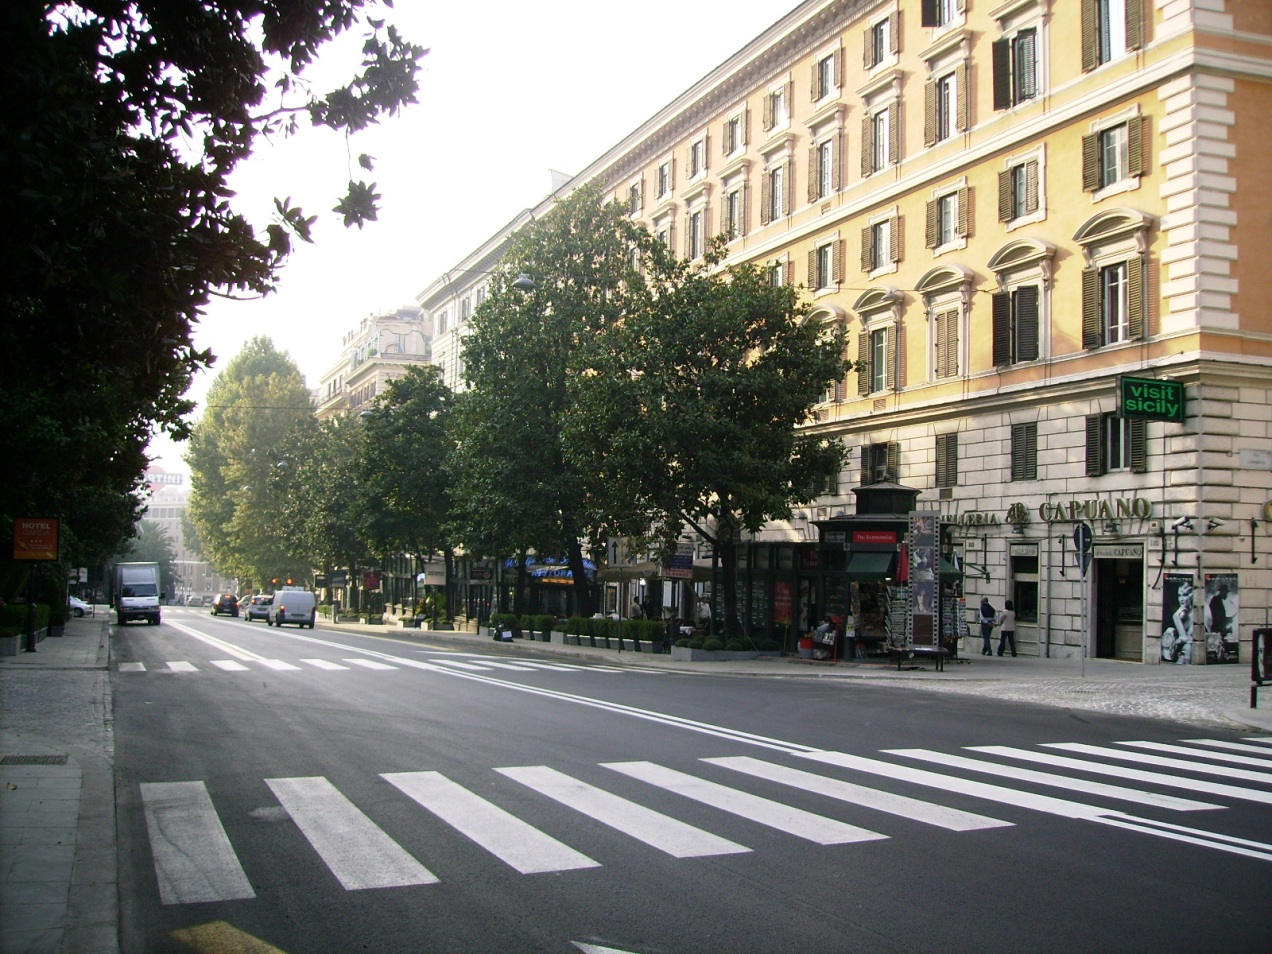 via veneto in the morning